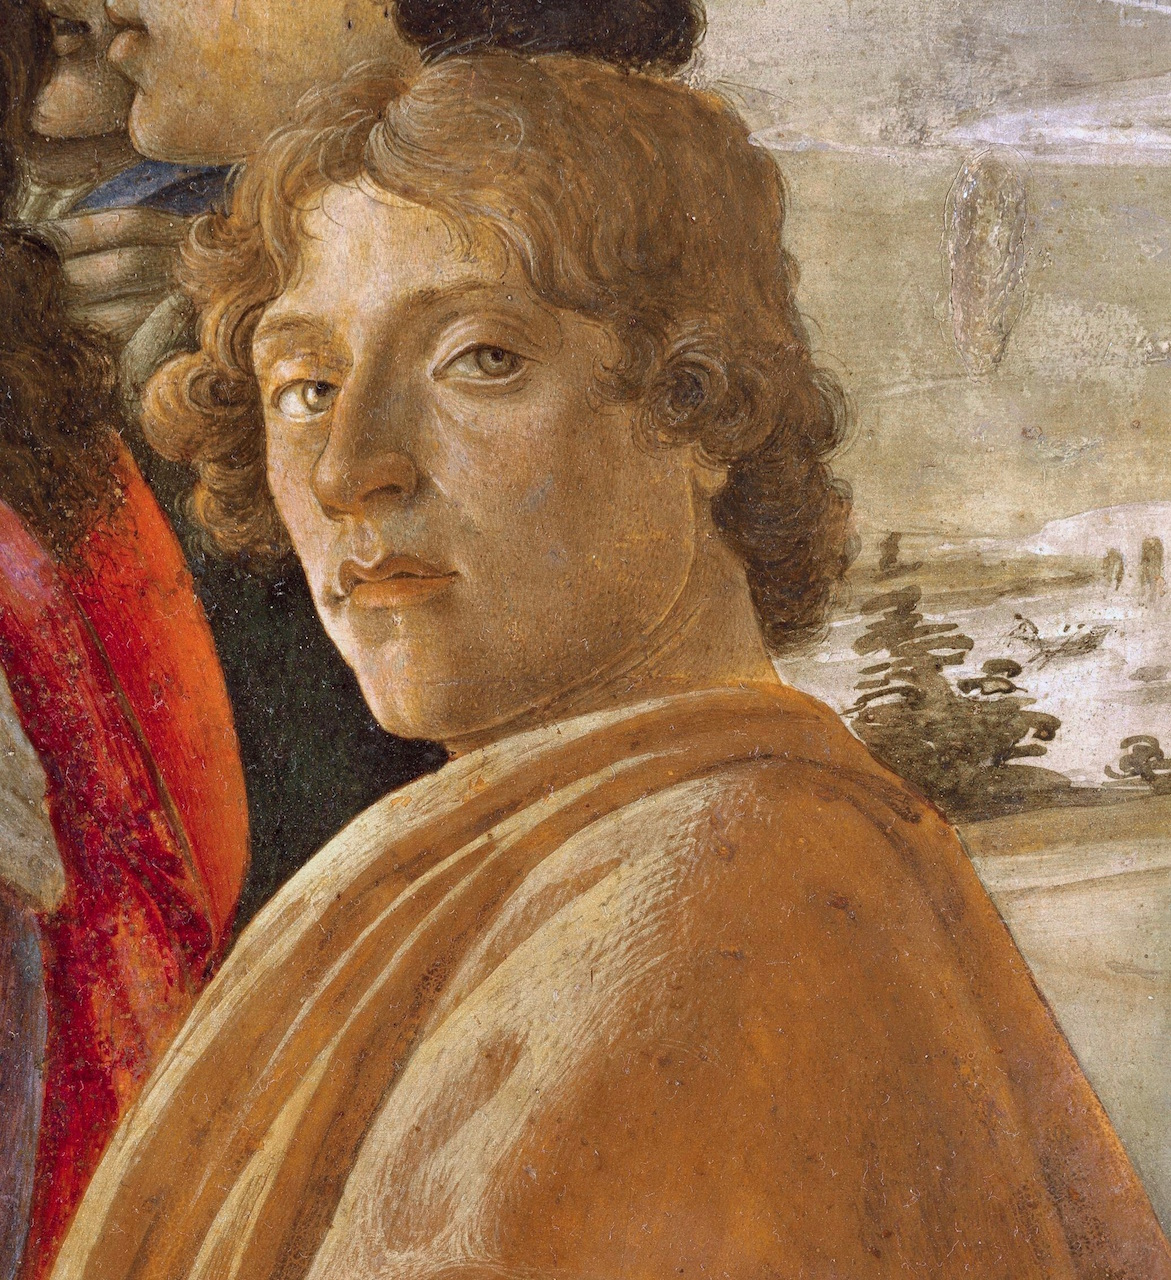 """sandro botticelli research paper Sandro botticelli created at least five bust-length images of idealized young  women that  advisors, for sharing her research expertise and wisdom  throughout this journey  contextualized vision of """"la bella simonetta""""30 in his  essay (2009),."""